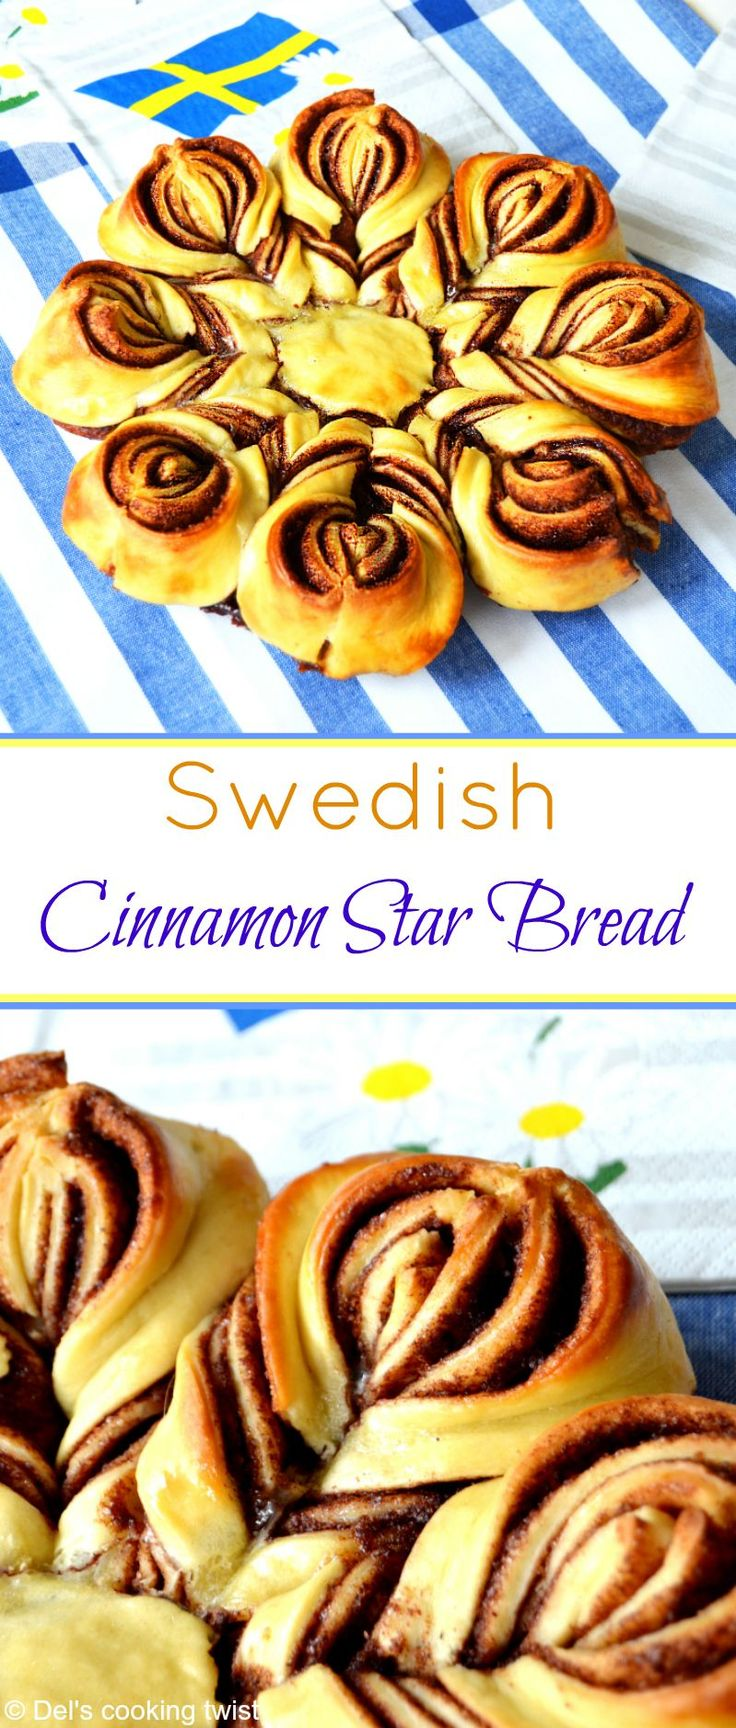 Swedish cinnamon star bread